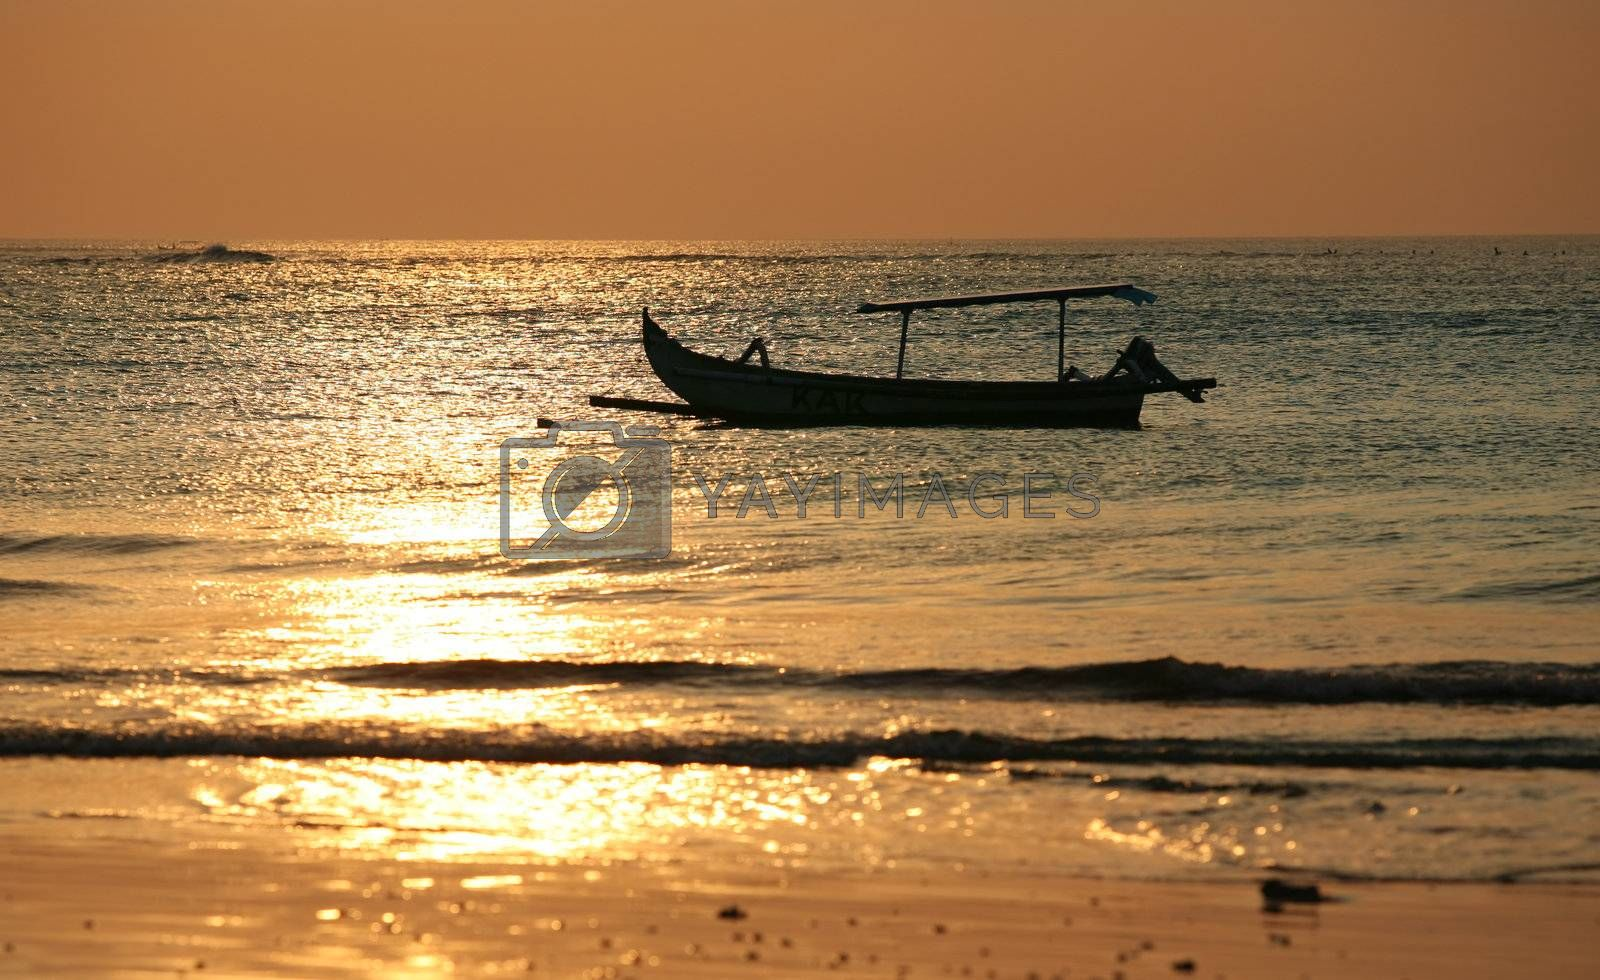 Drifting boat on a sunset. Coast of the Indian ocean. Bali